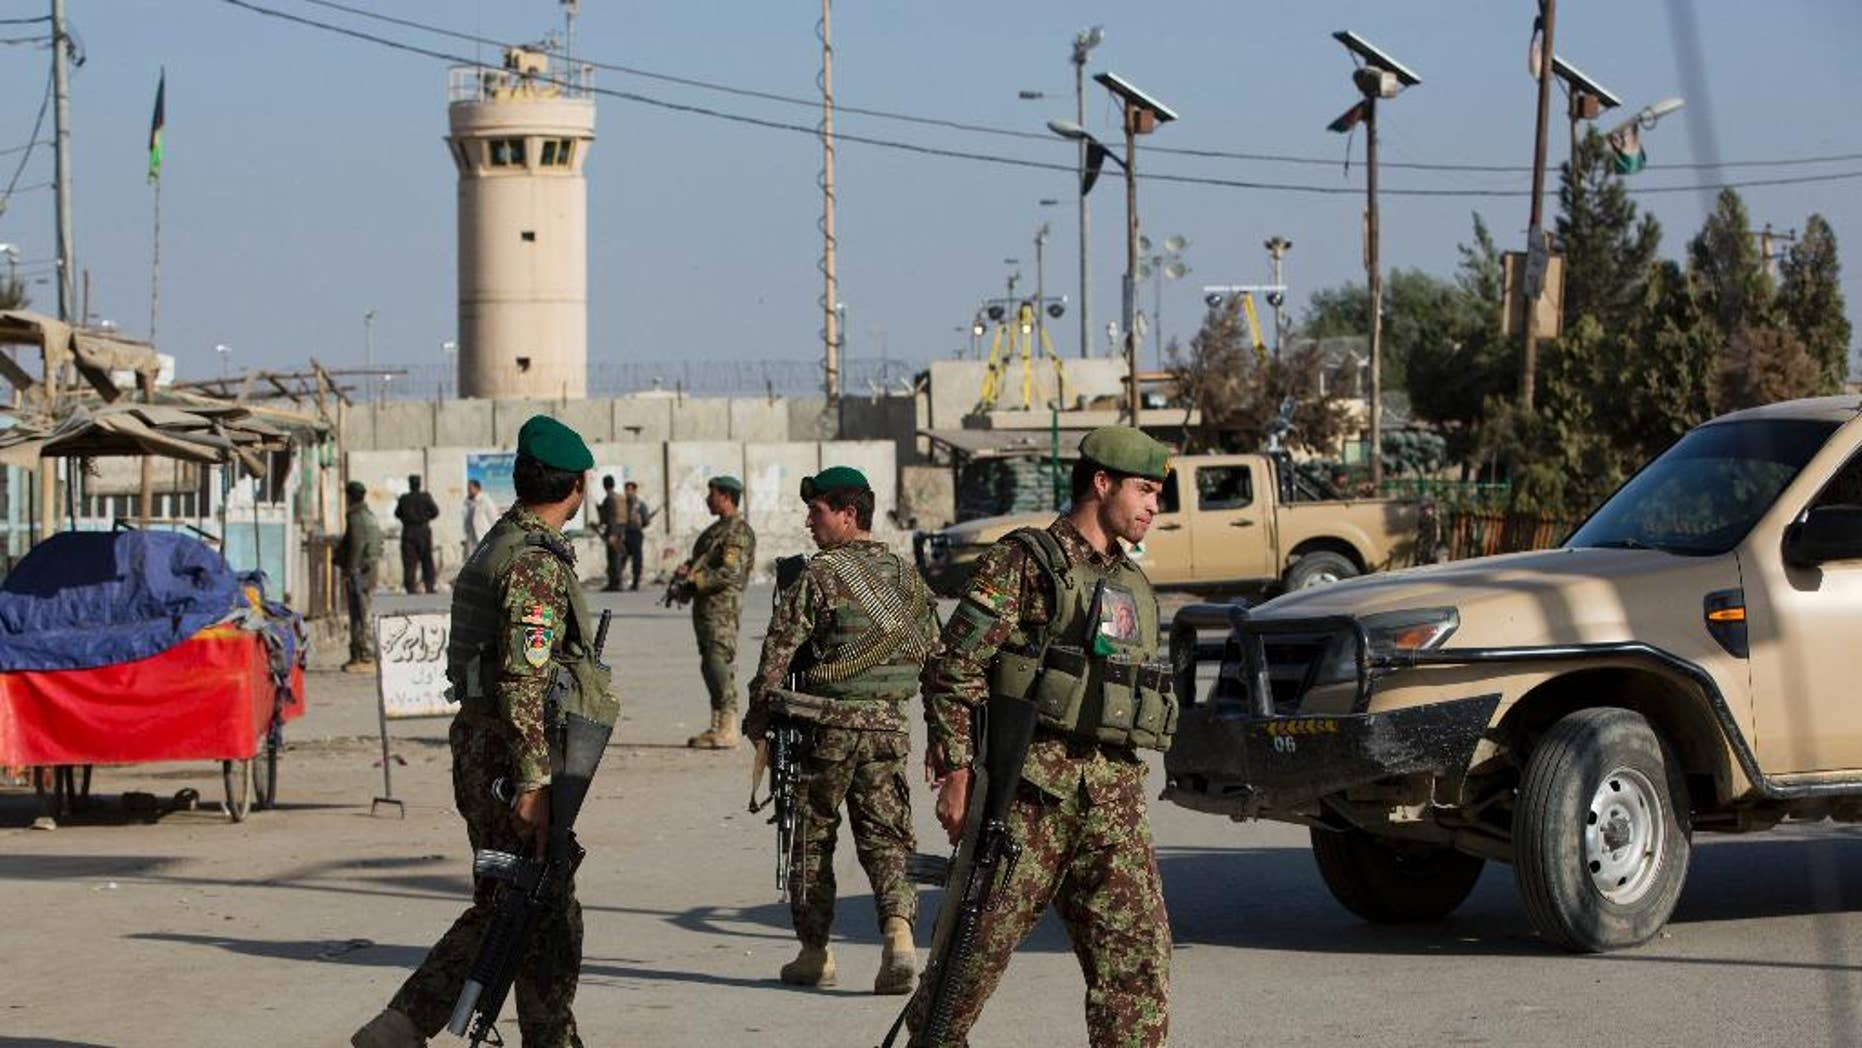 Afghanistan's National Army soldiers guard, blocking the main road to the Bagram Airfield's main gate in Bagram, north of Kabul, Afghanistan, Saturday, Nov. 12, 2016. An explosion at a U.S. airfield in Afghanistan early Saturday killed four people, the head of international forces in the country said. (AP Photos/Massoud Hossaini)